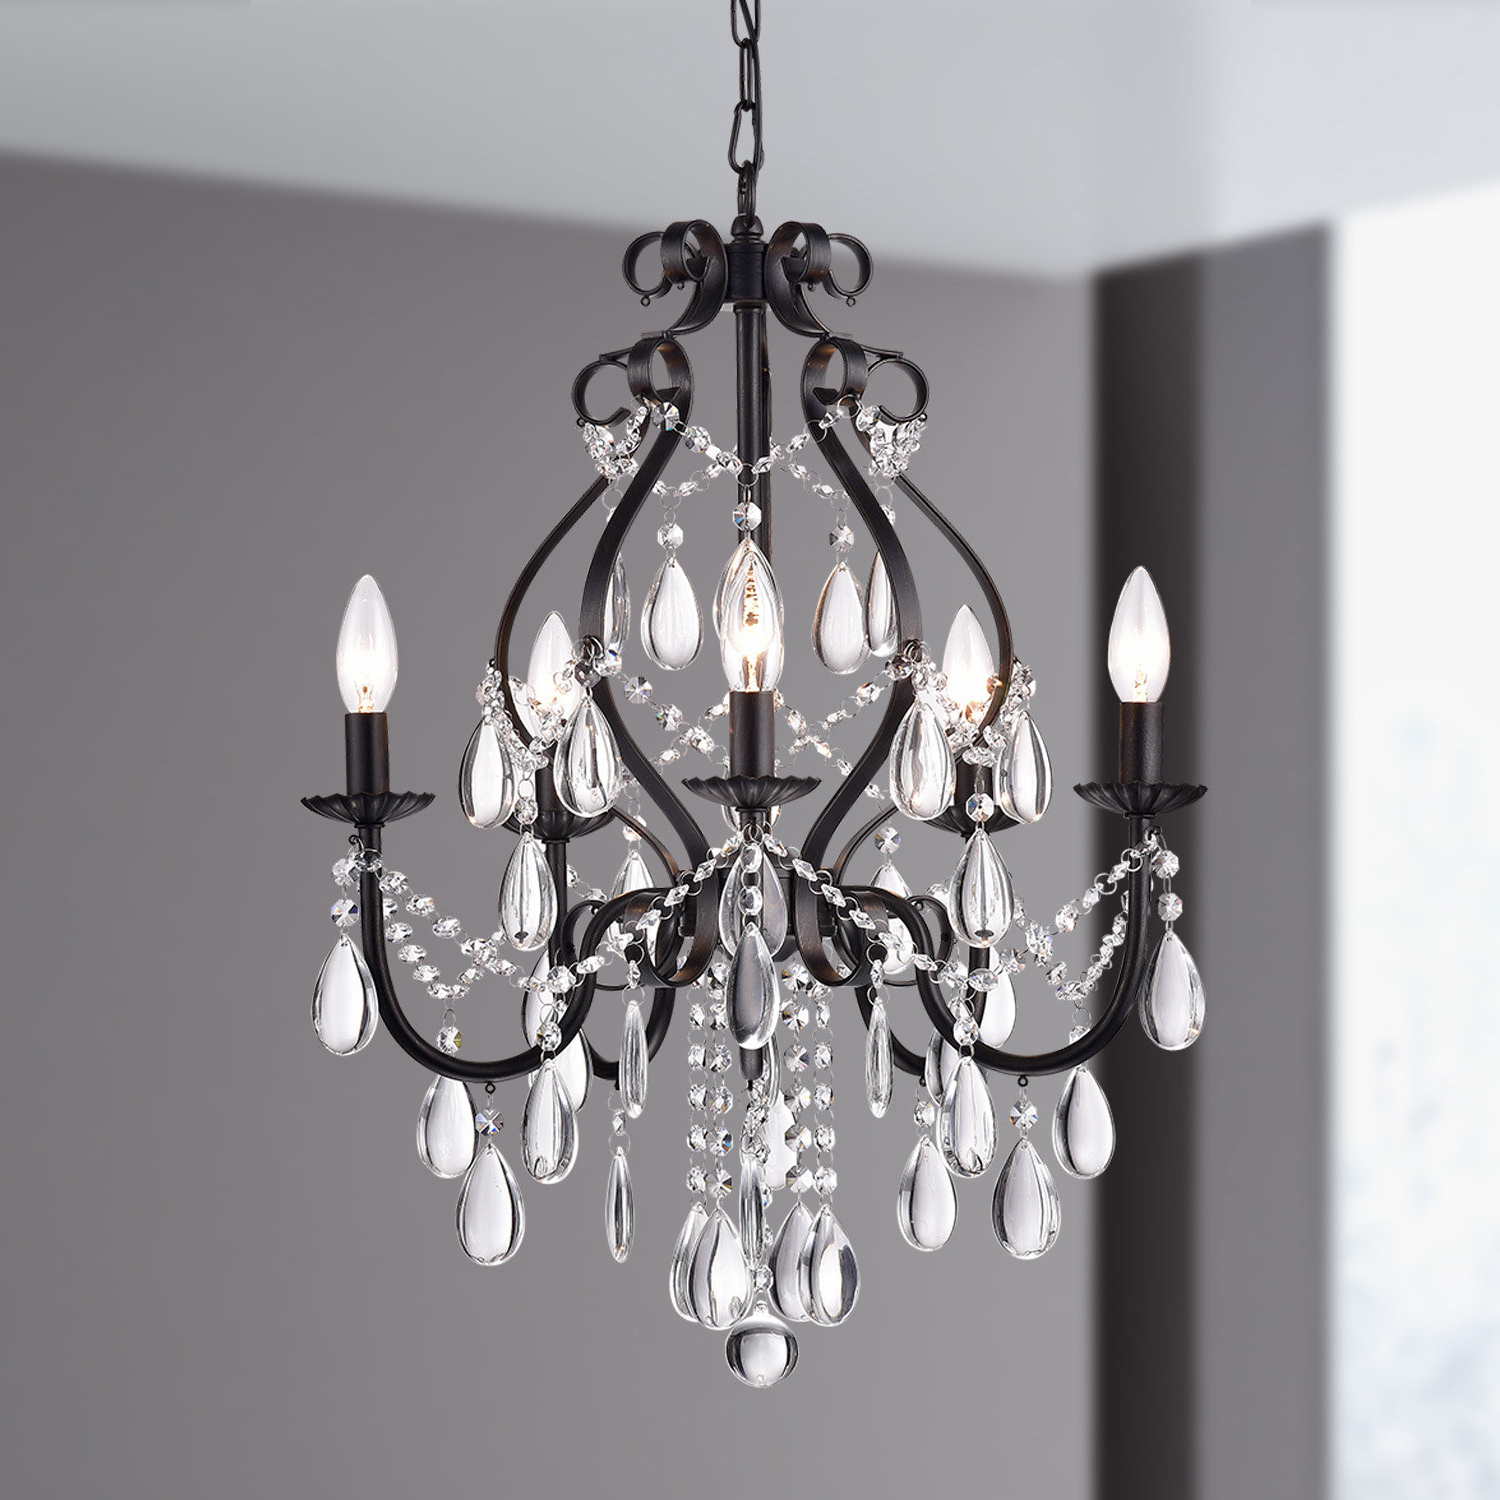 Newest Axl 5 Light Candle Style Chandelier Intended For Blanchette 5 Light Candle Style Chandeliers (View 10 of 20)